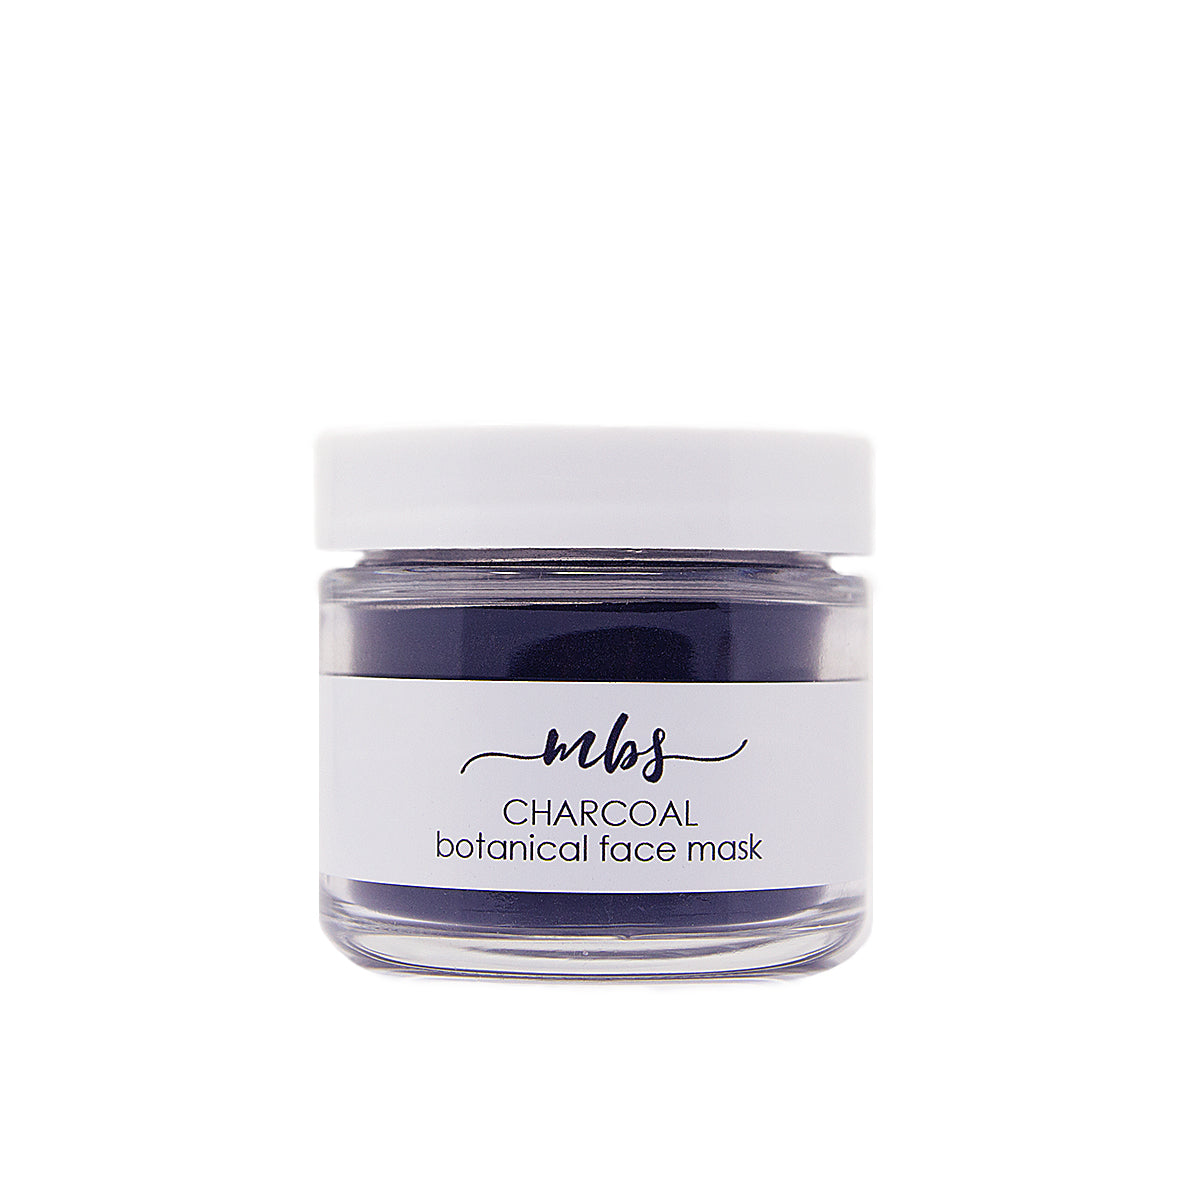 Charcoal botanical face mask-Face Mask-Morning Blossom Studio